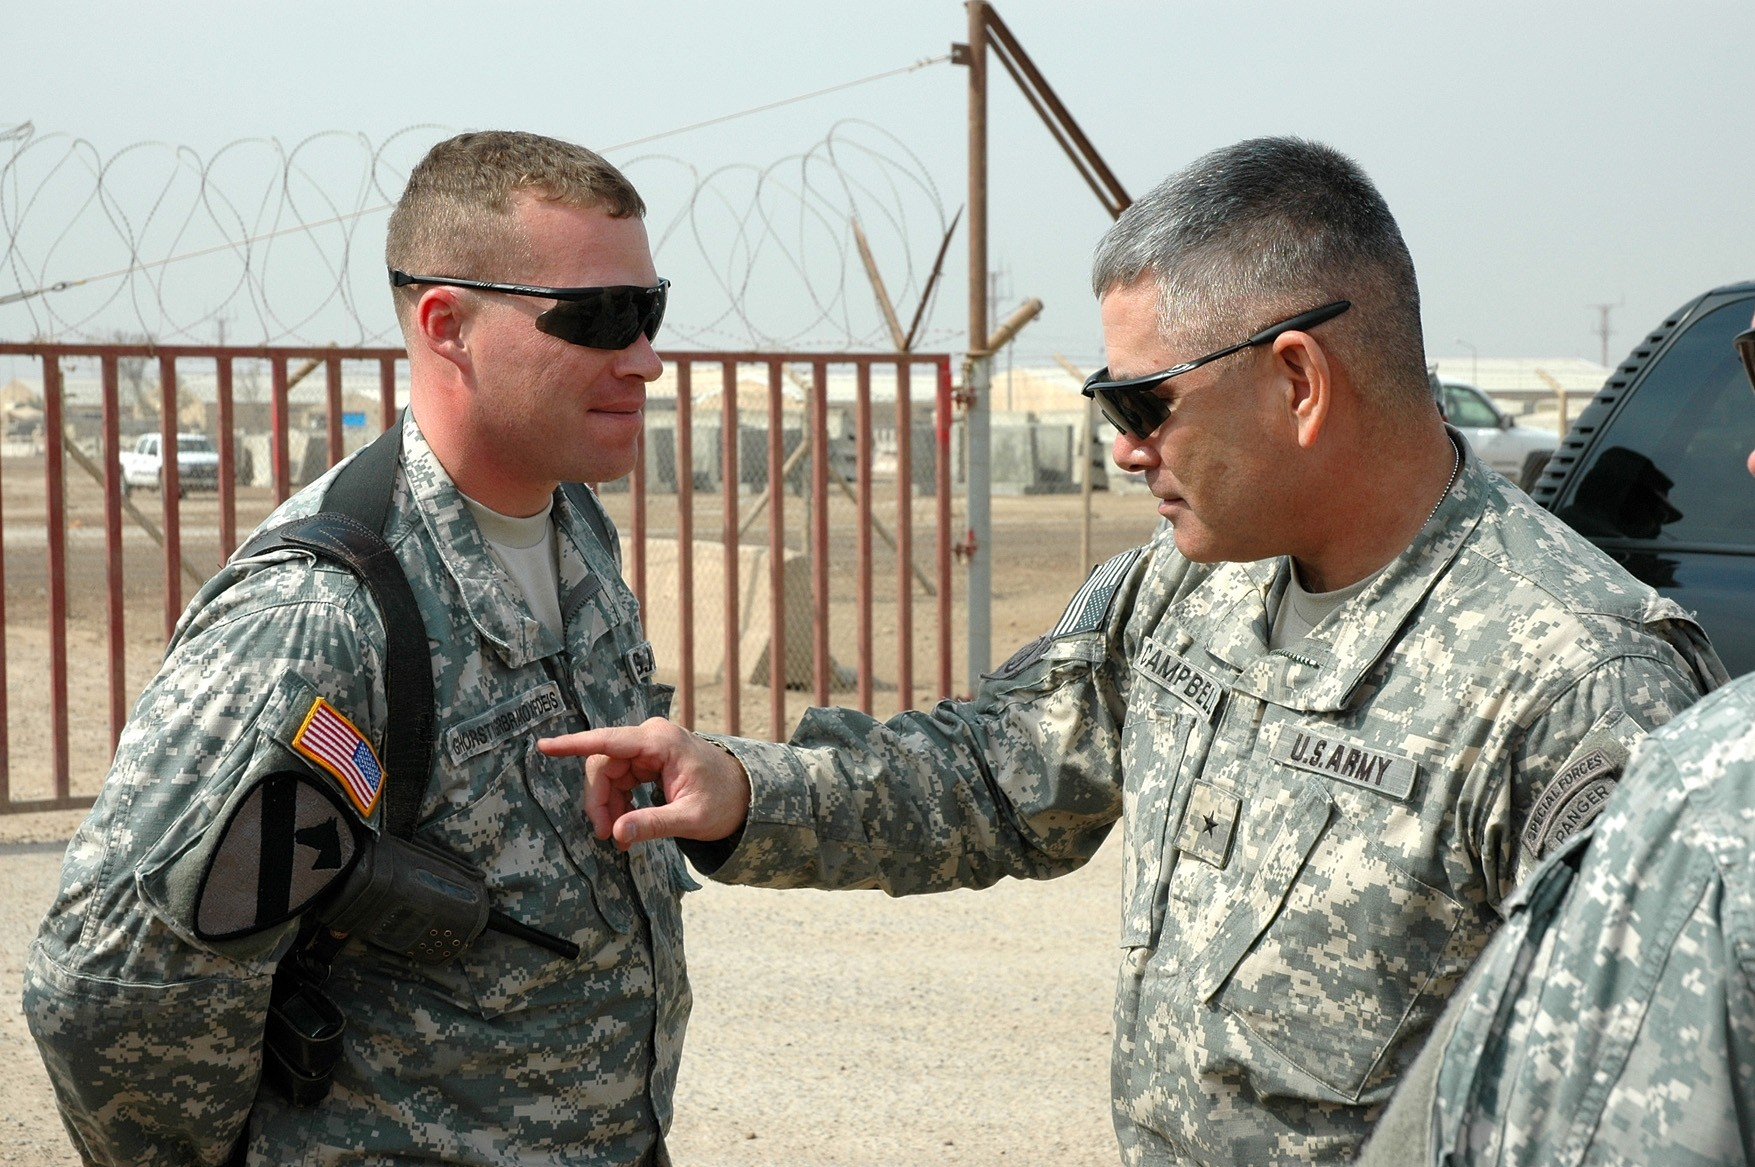 U-A-V is easy to pronounce  Article  The United States Army